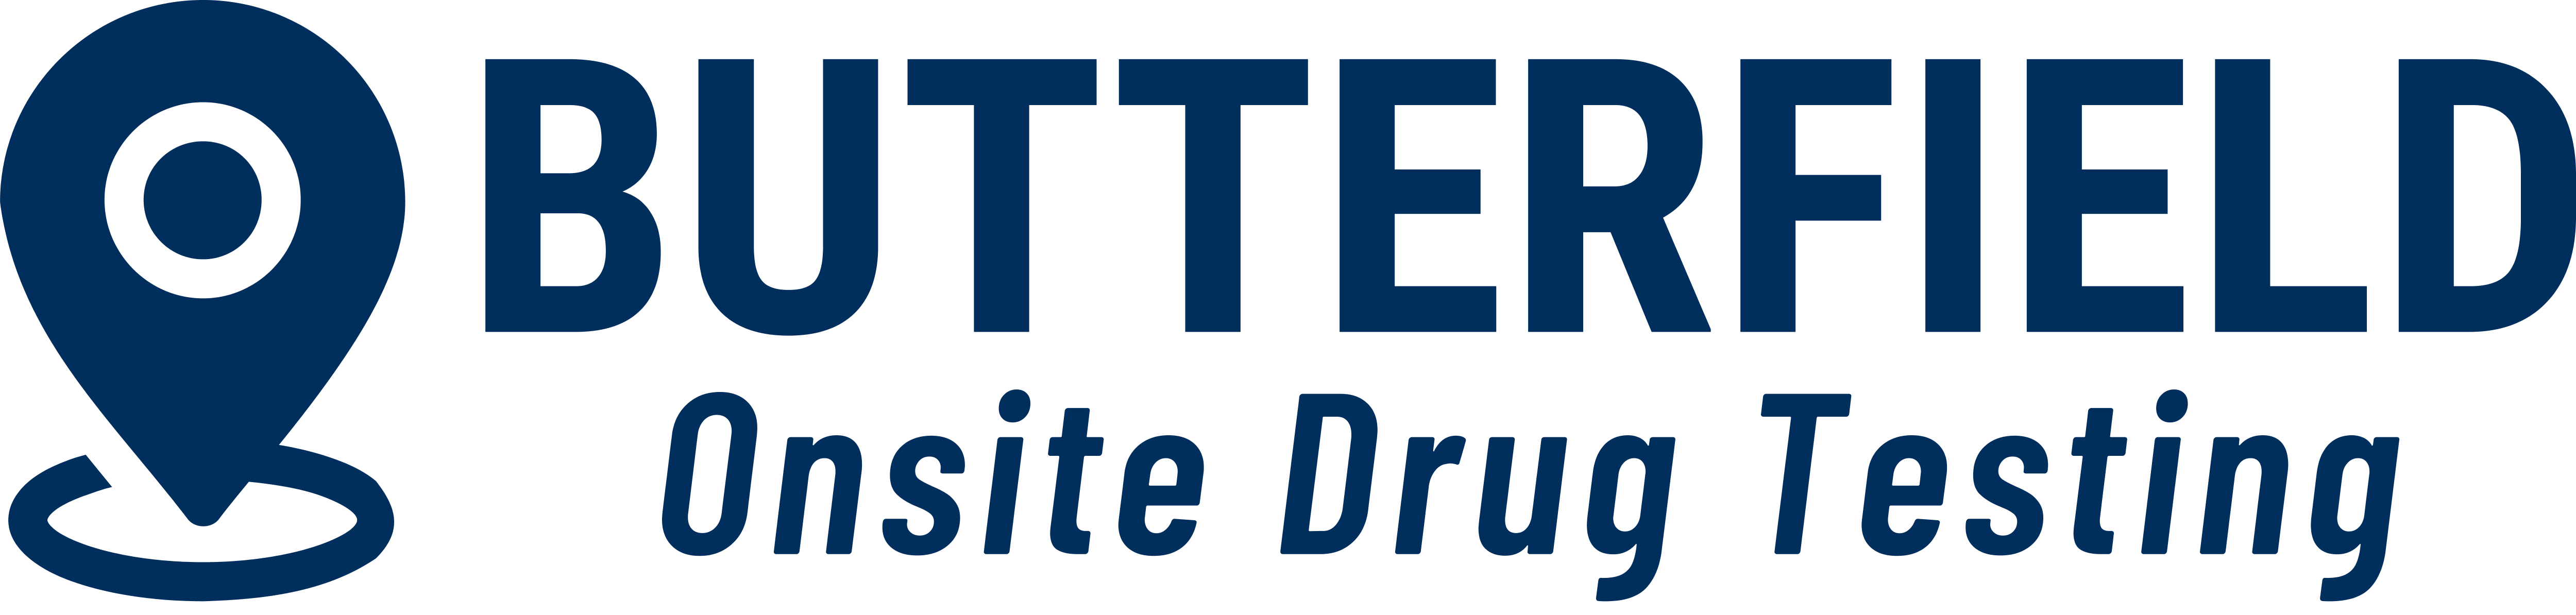 Butterfield drug testing